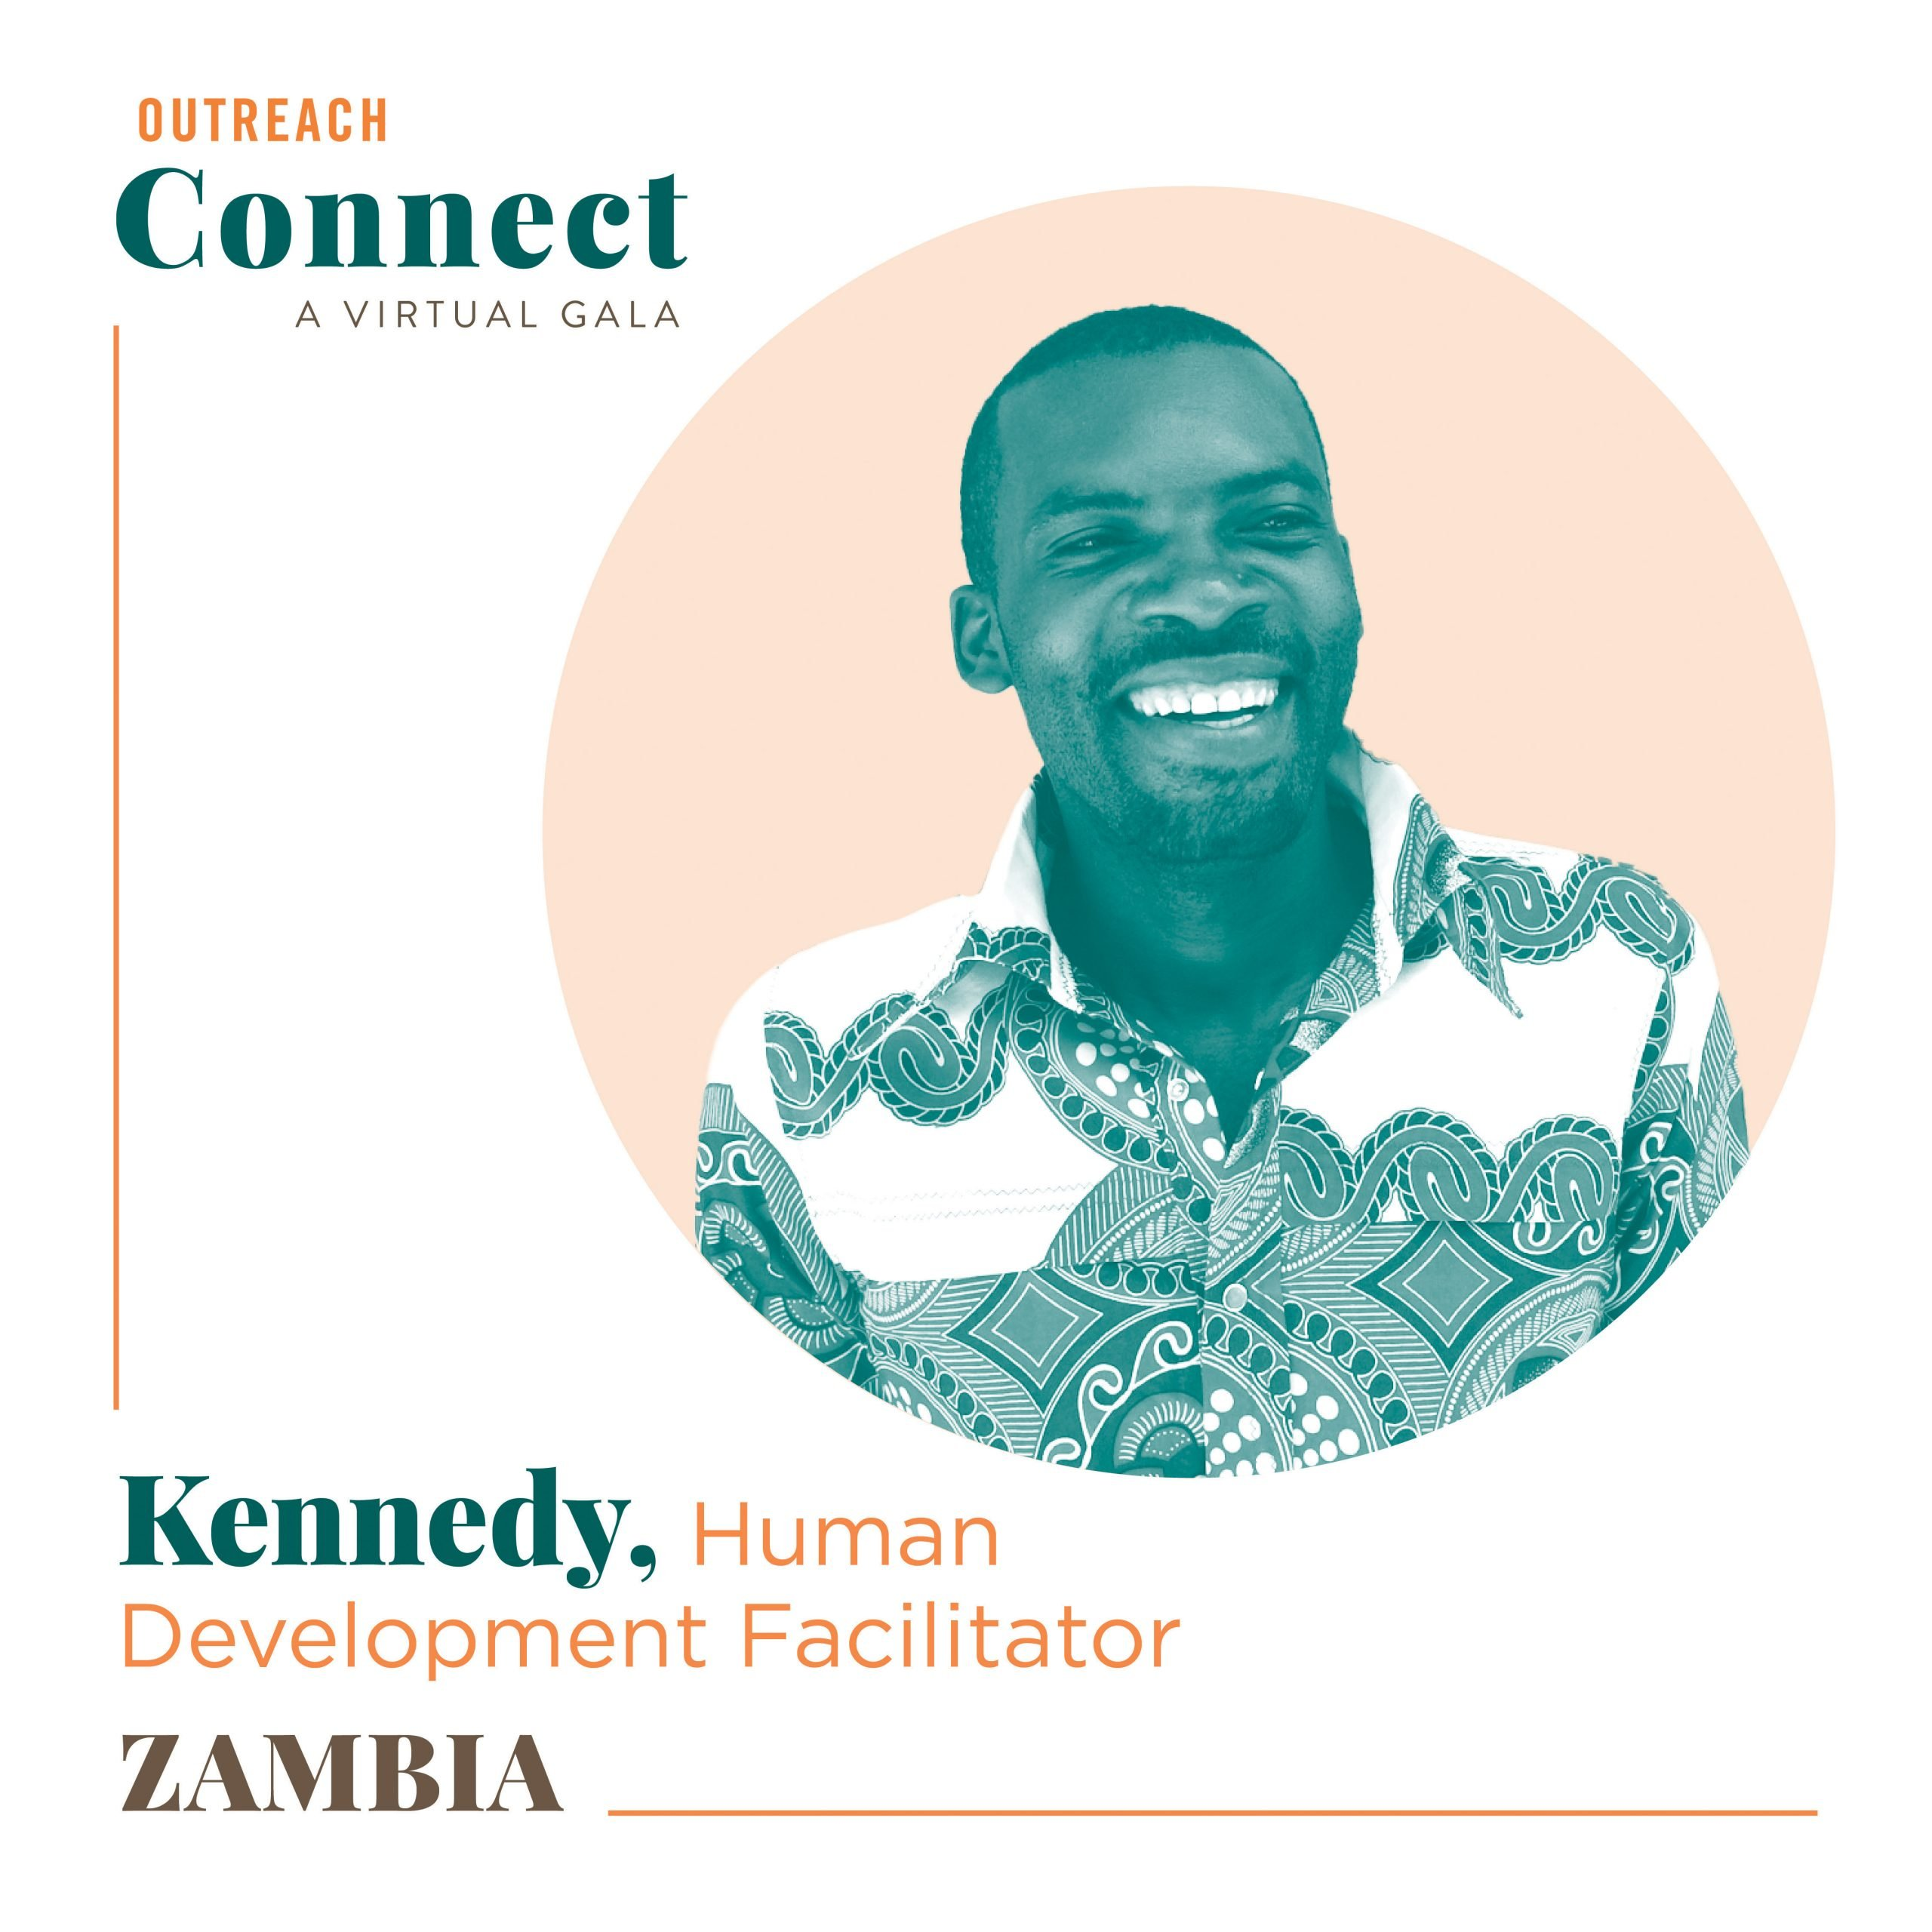 Kennedy, an Outreach HDF from Zambia